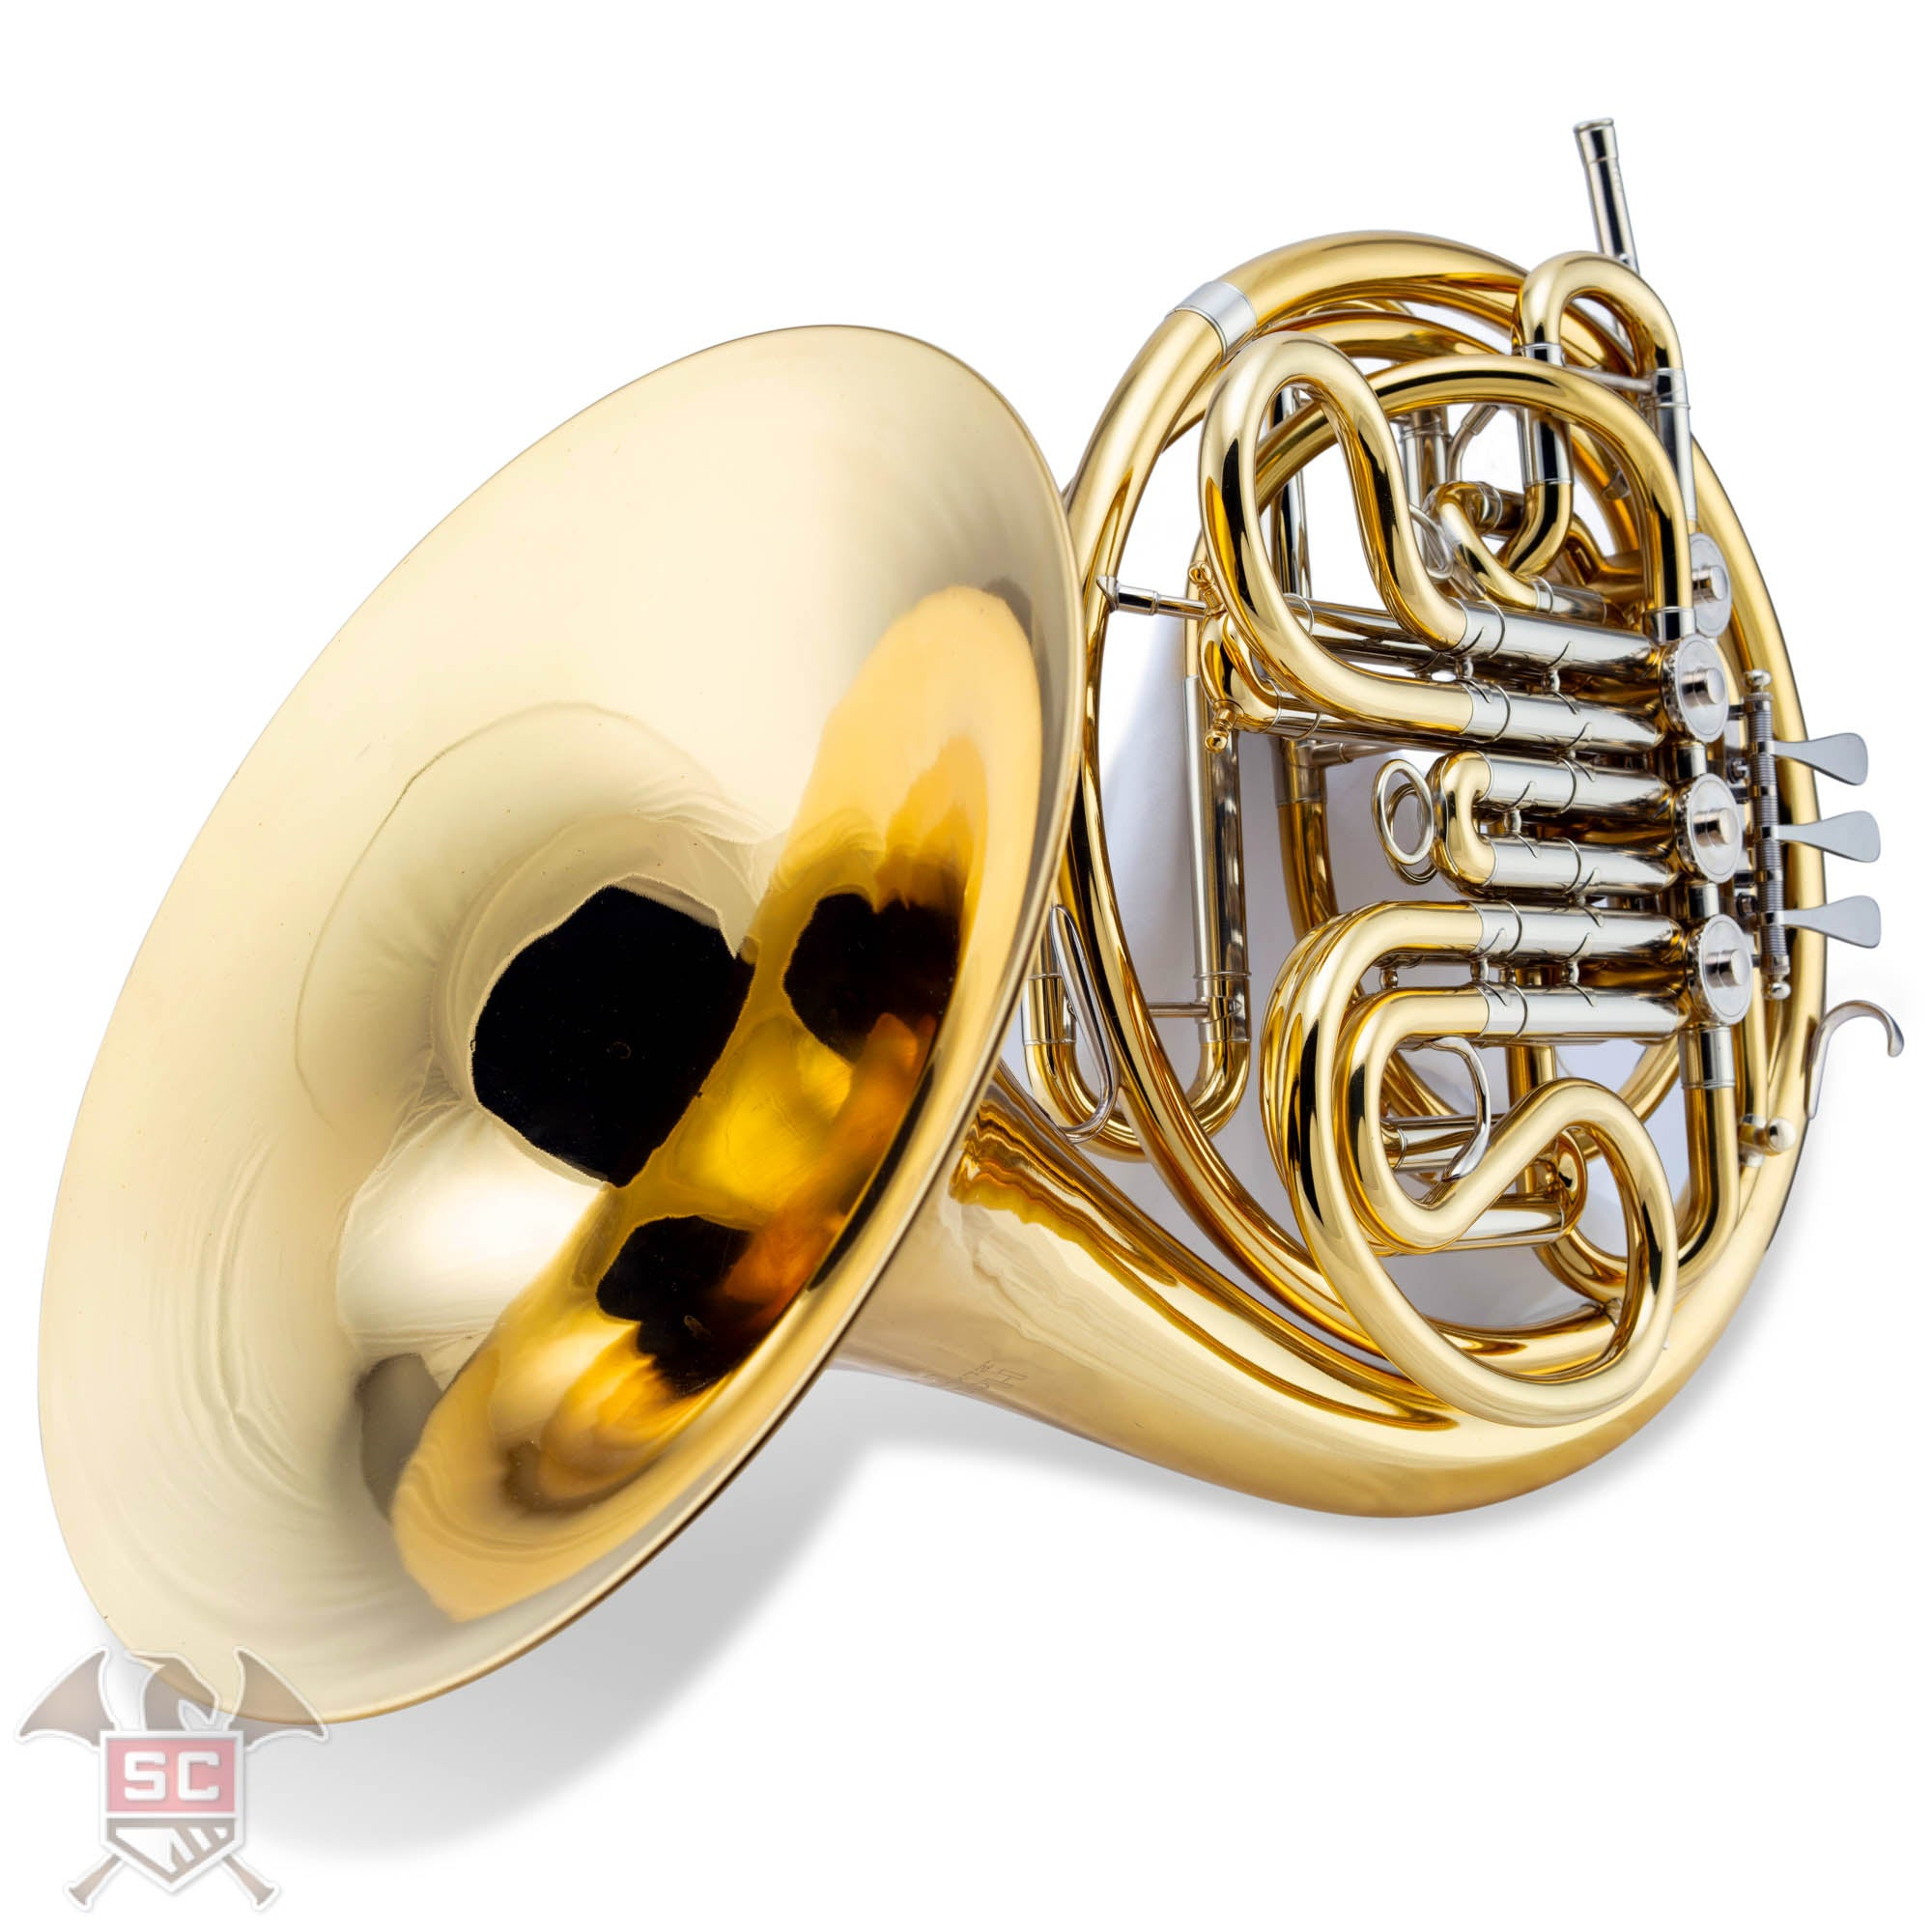 Holton H-178 double french horn SN#501239